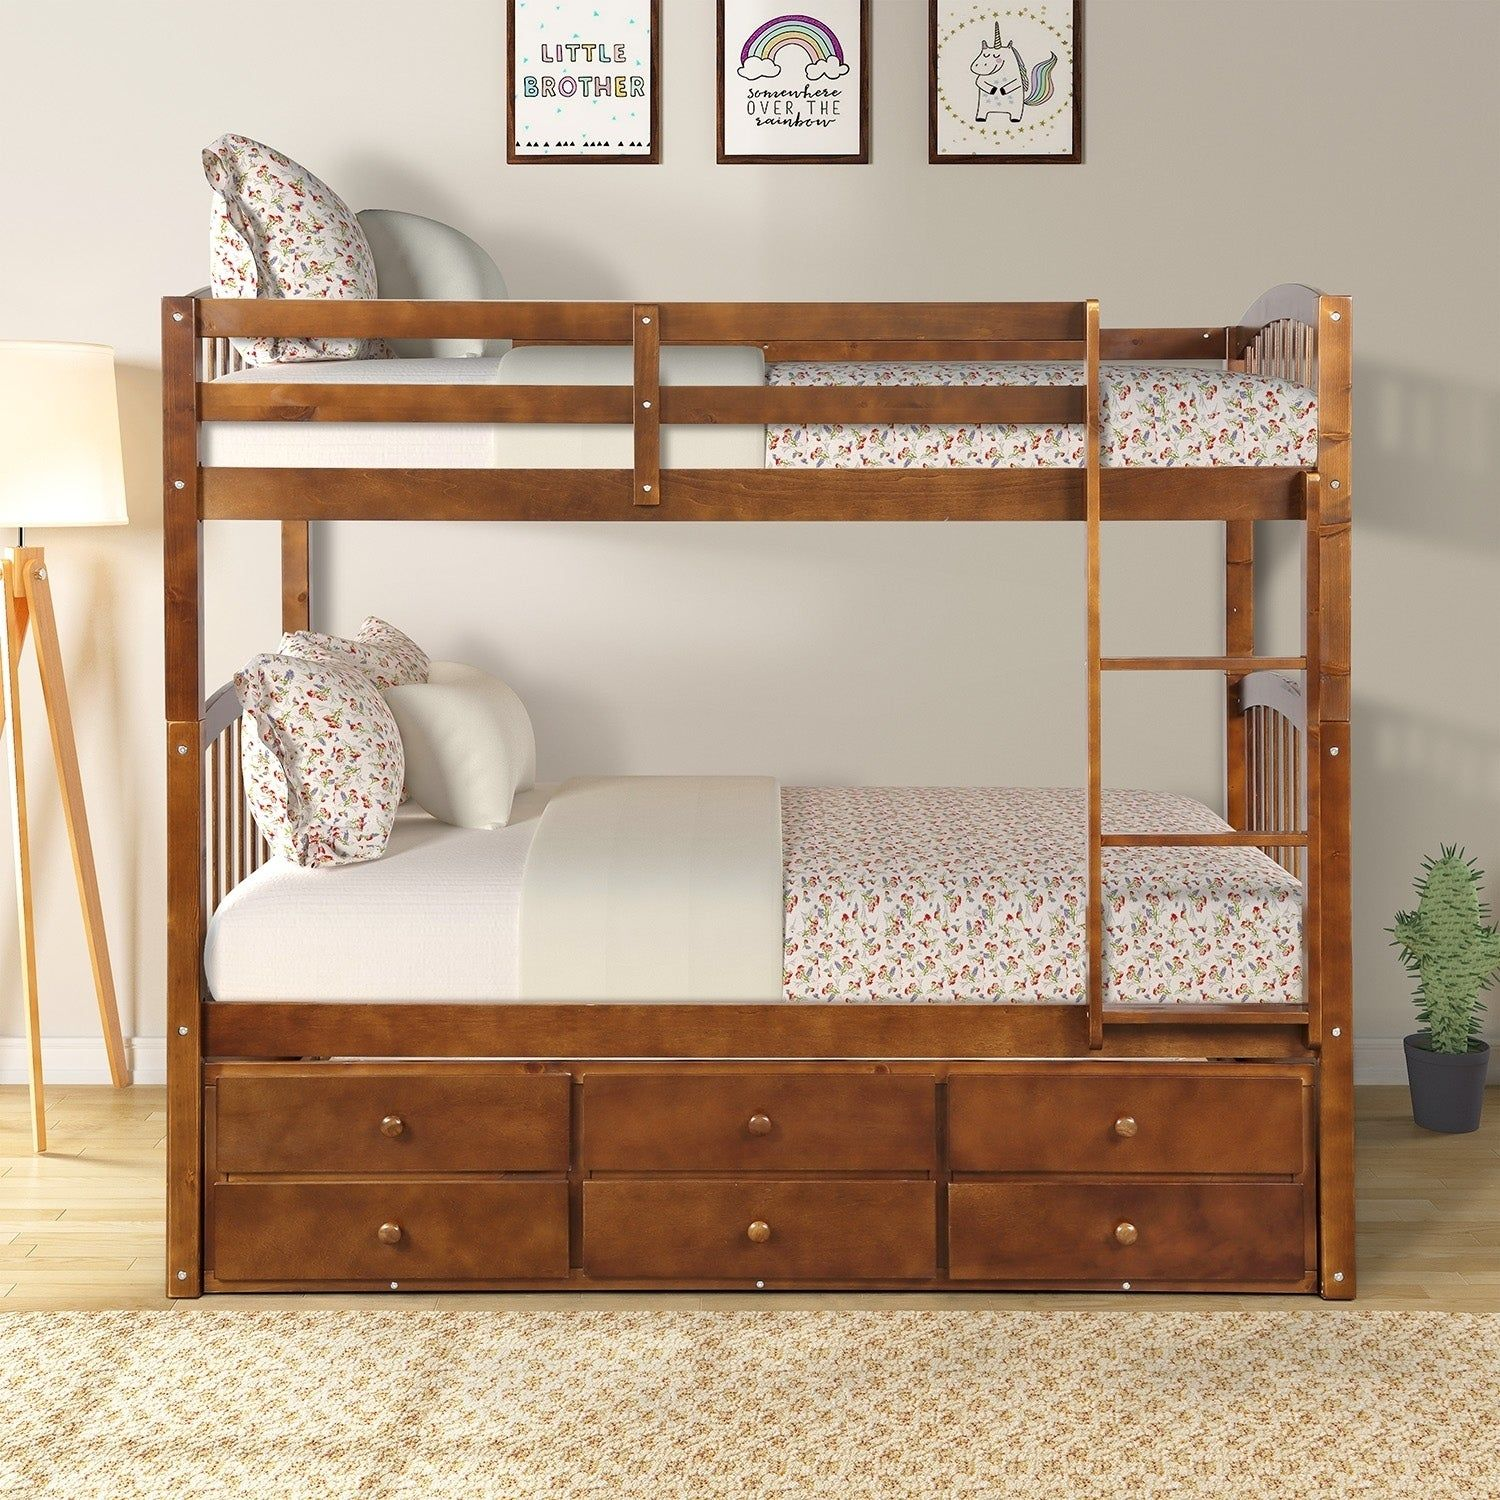 Twin Bunk Bed With Ladder Safety Rail